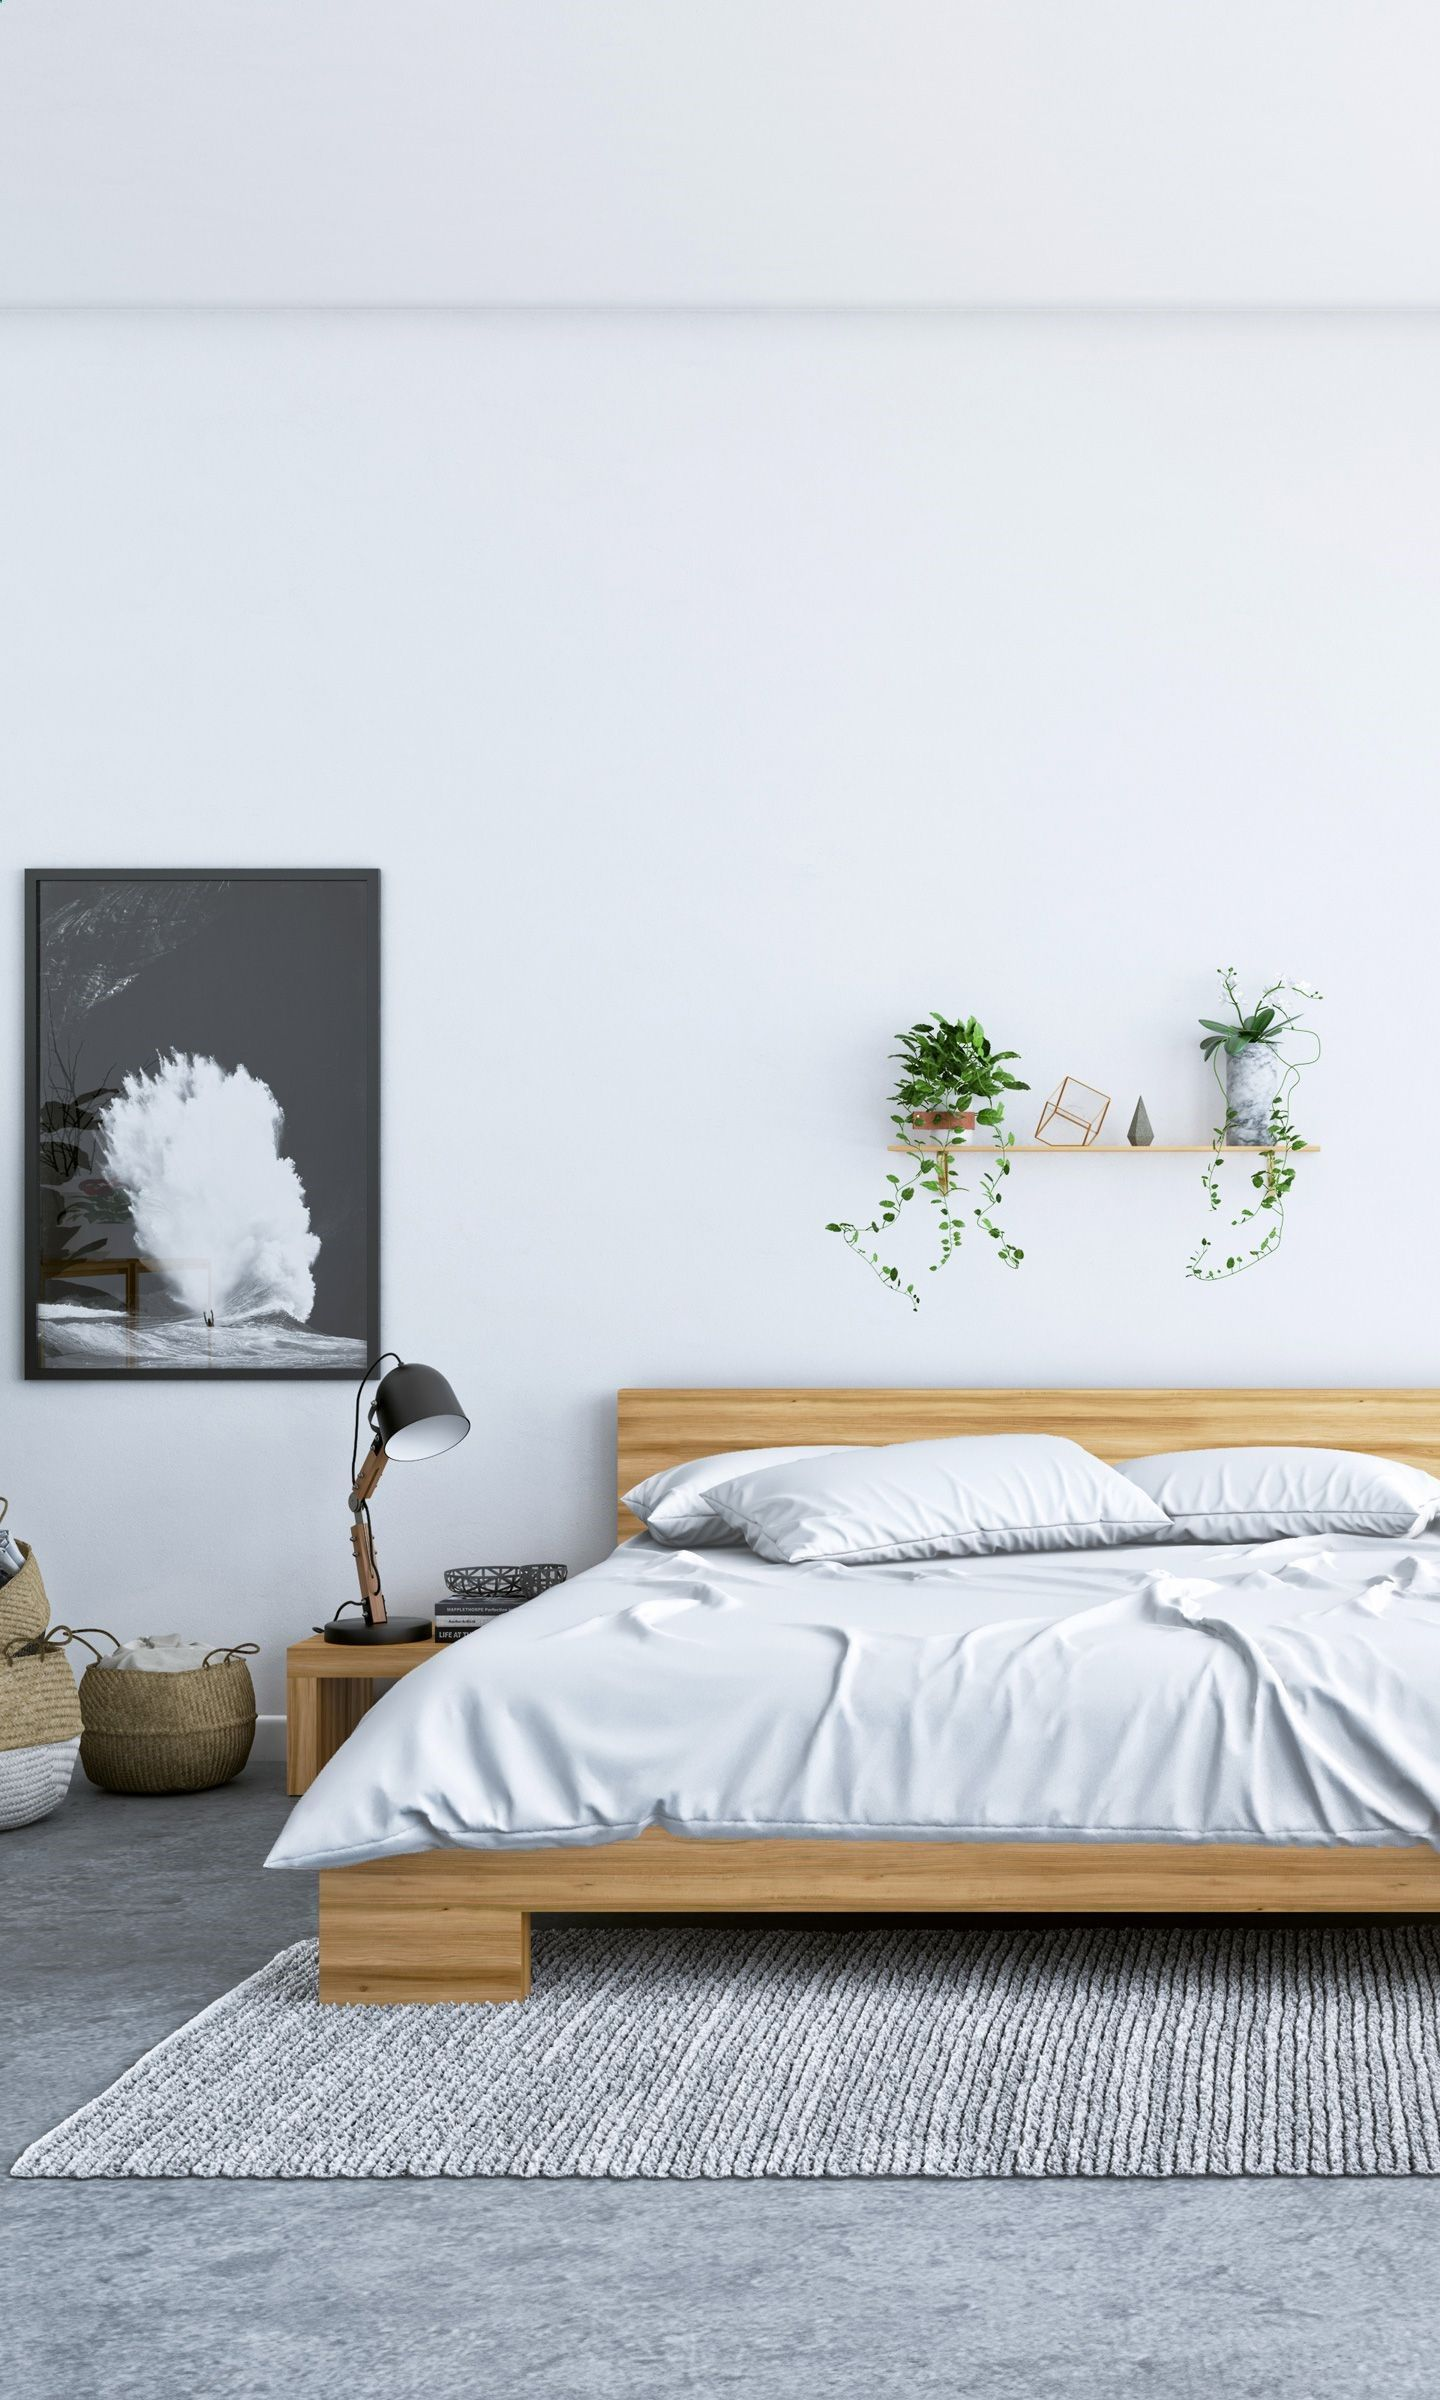 Sleep Well With The Fredrik Bed And Night Stand Set